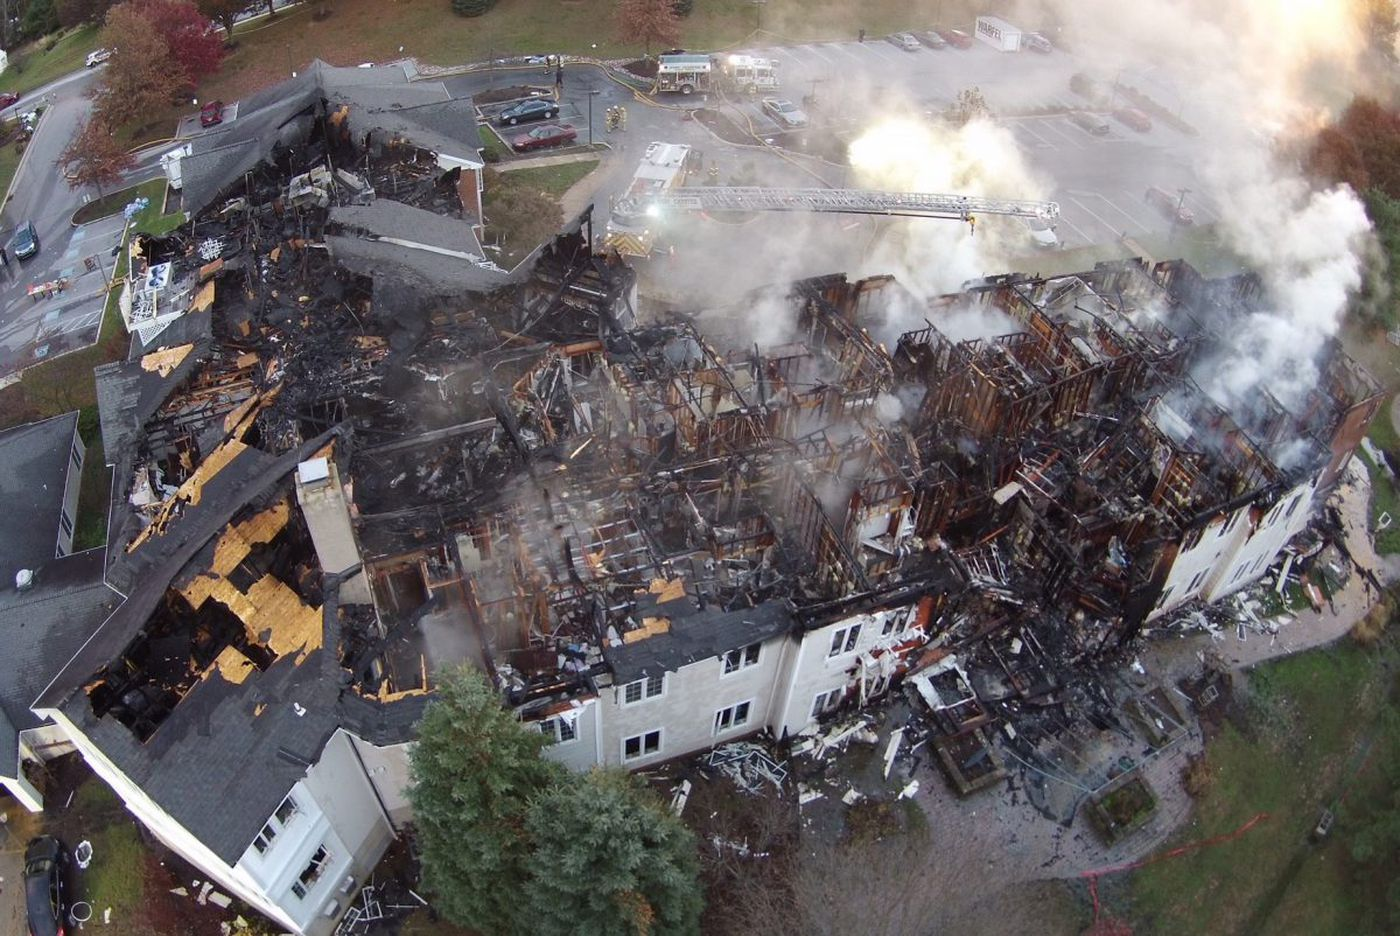 On tapes of fatal blaze, firefighters report water problems